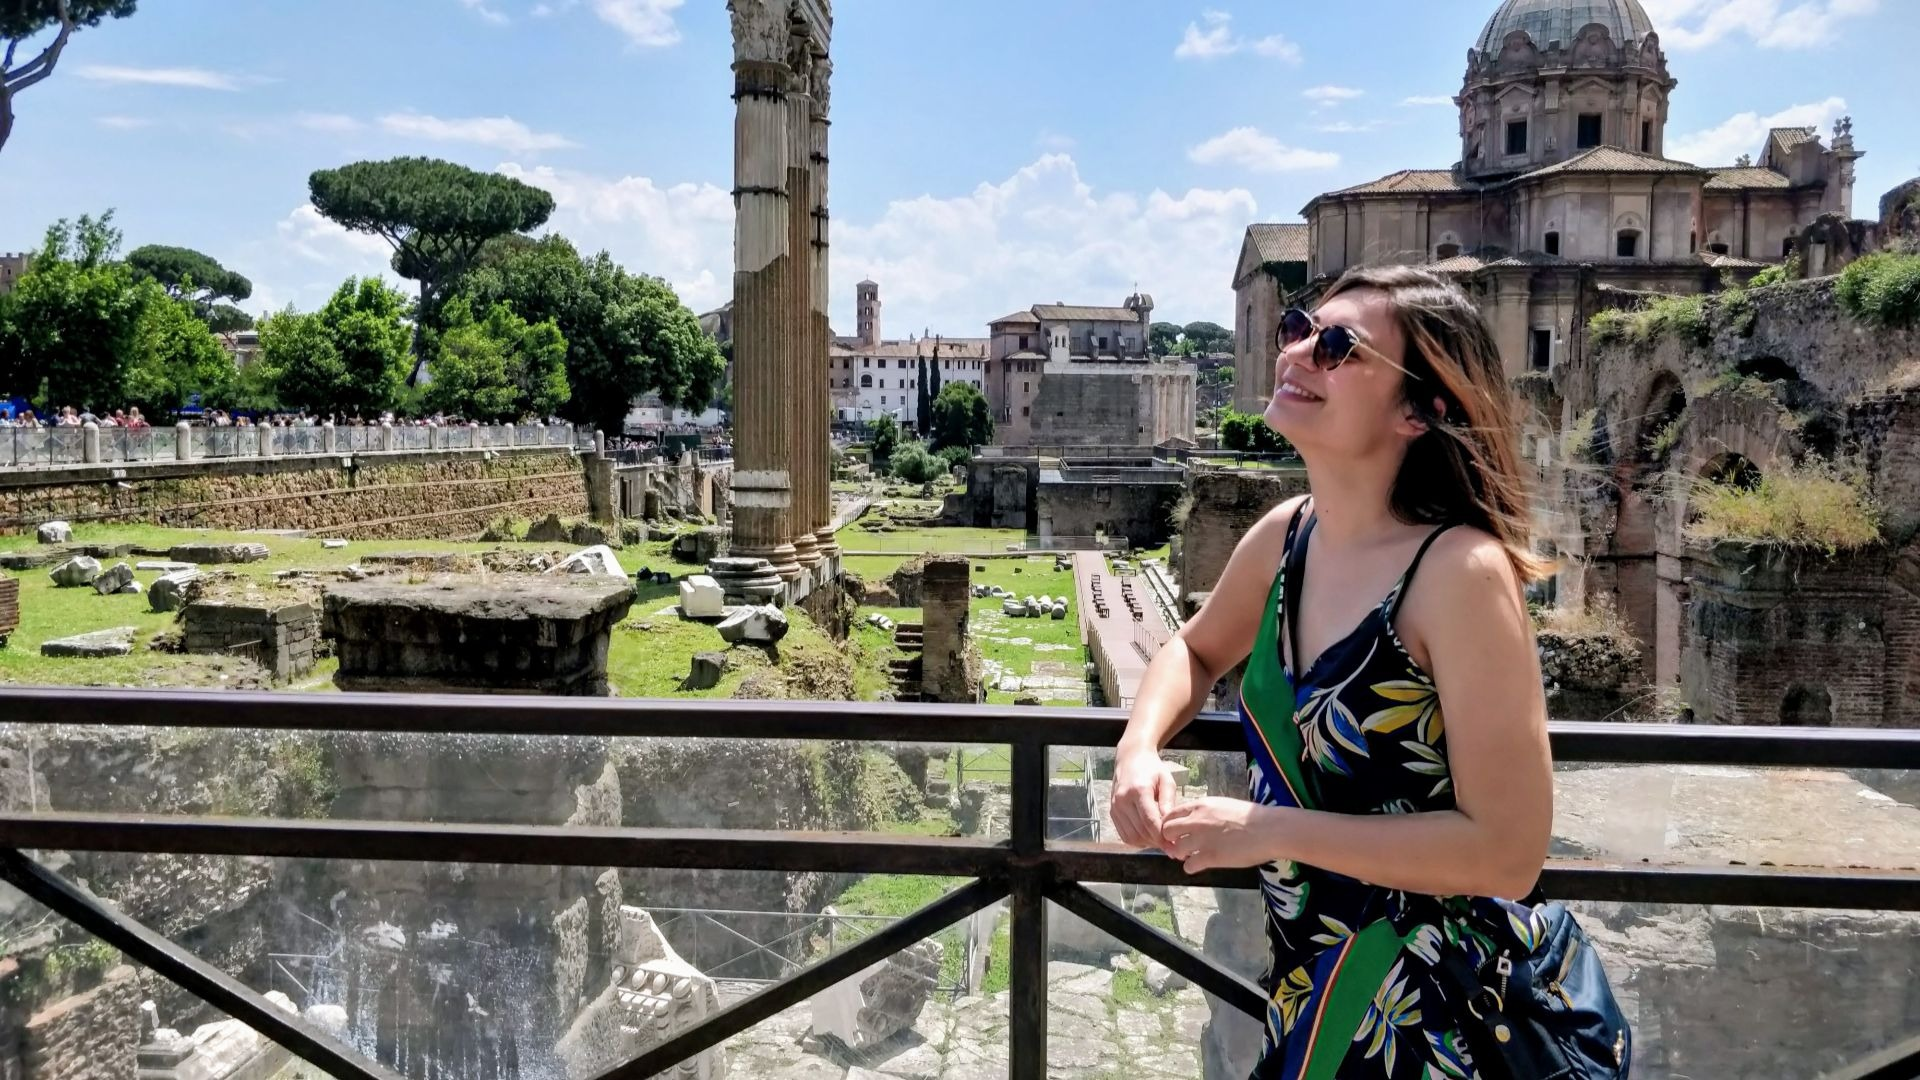 3 Days in Rome, Italy: Things to Do, See & Eat